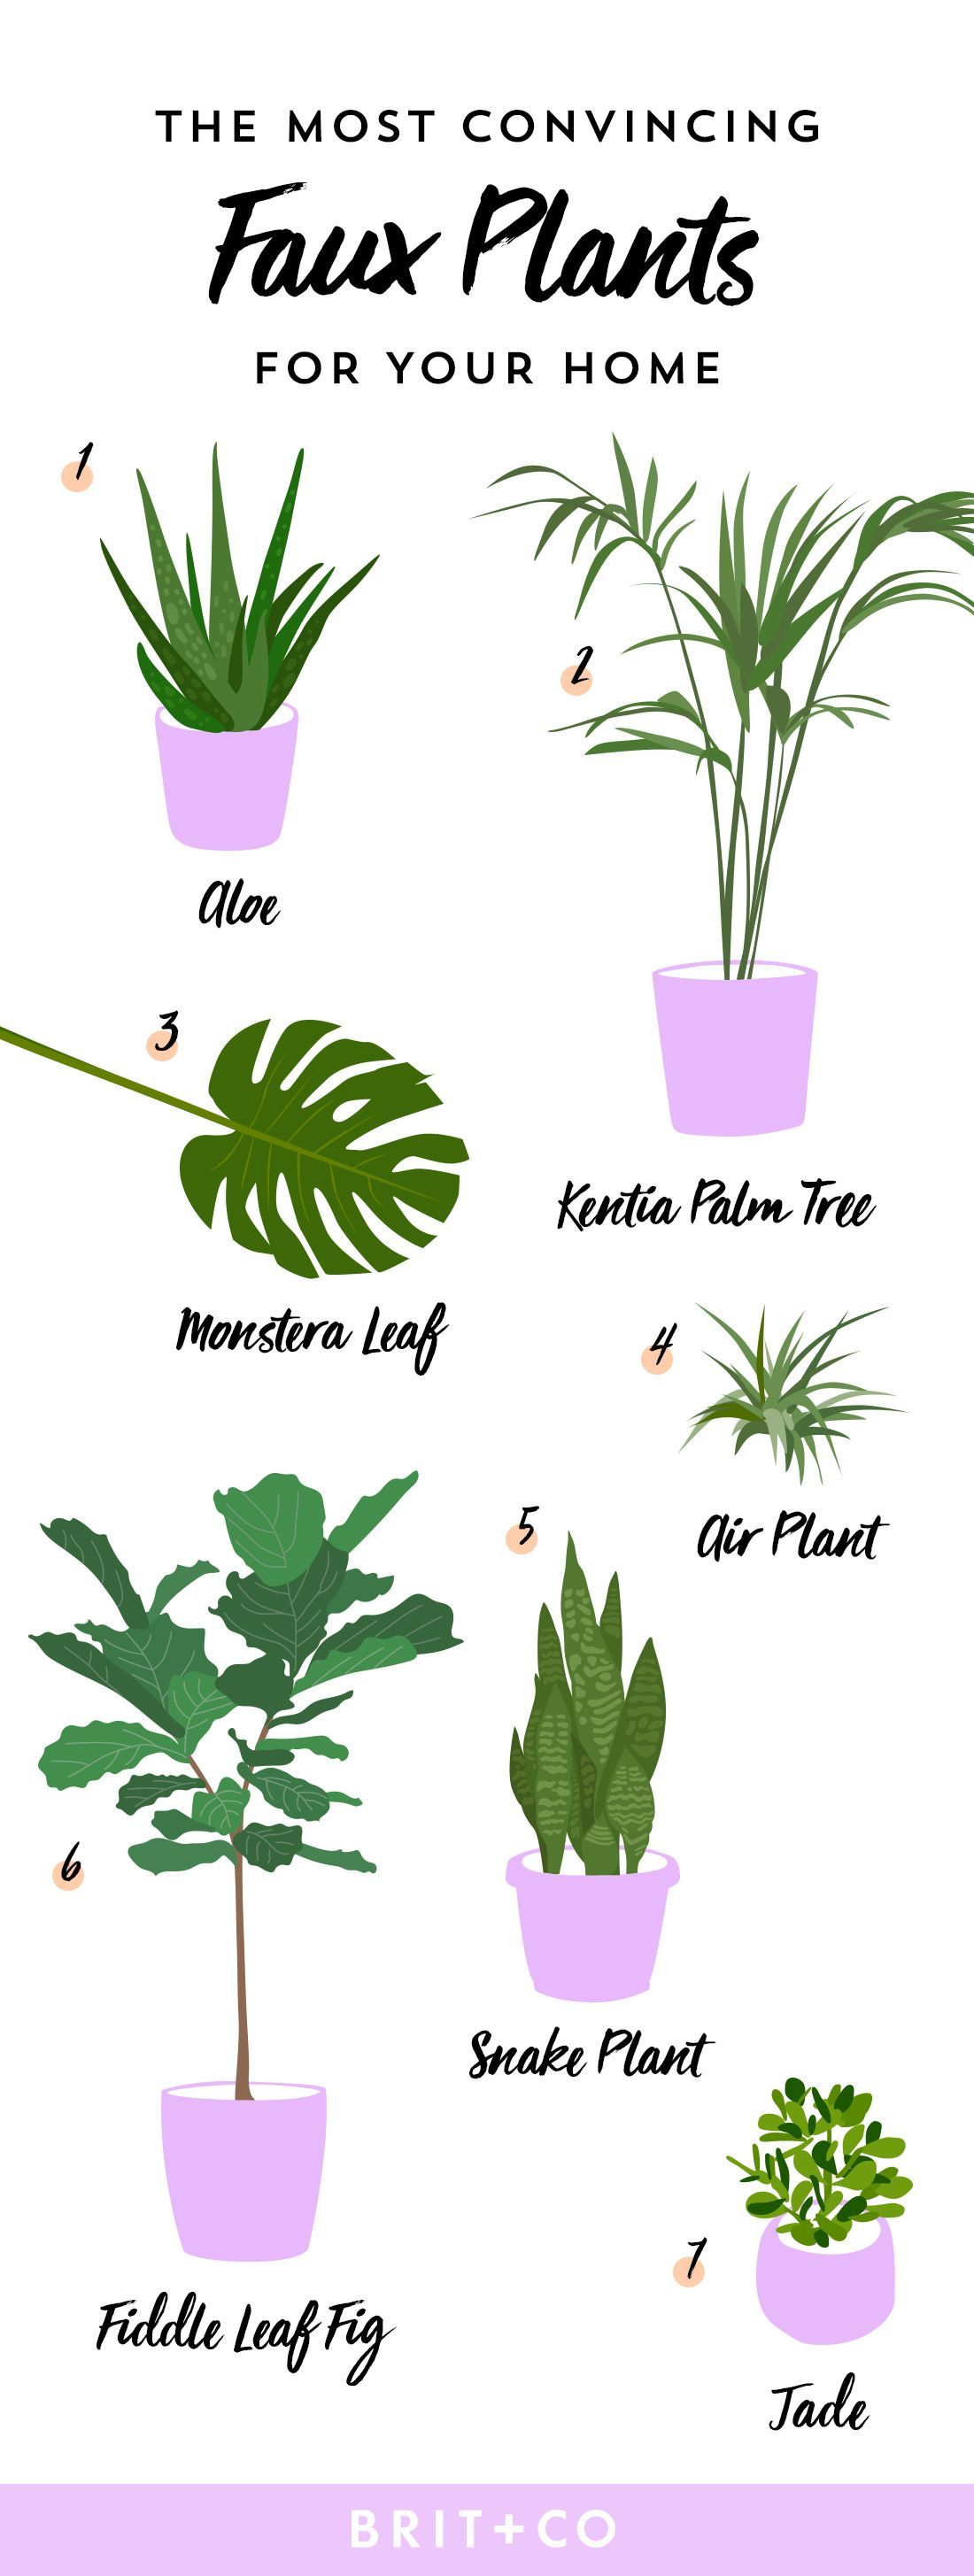 Pick These Artificial Plants For Fauxliage That Doesn T Look So Faux Fake Plants Decor Artificial Plant Wall Artificial Plants